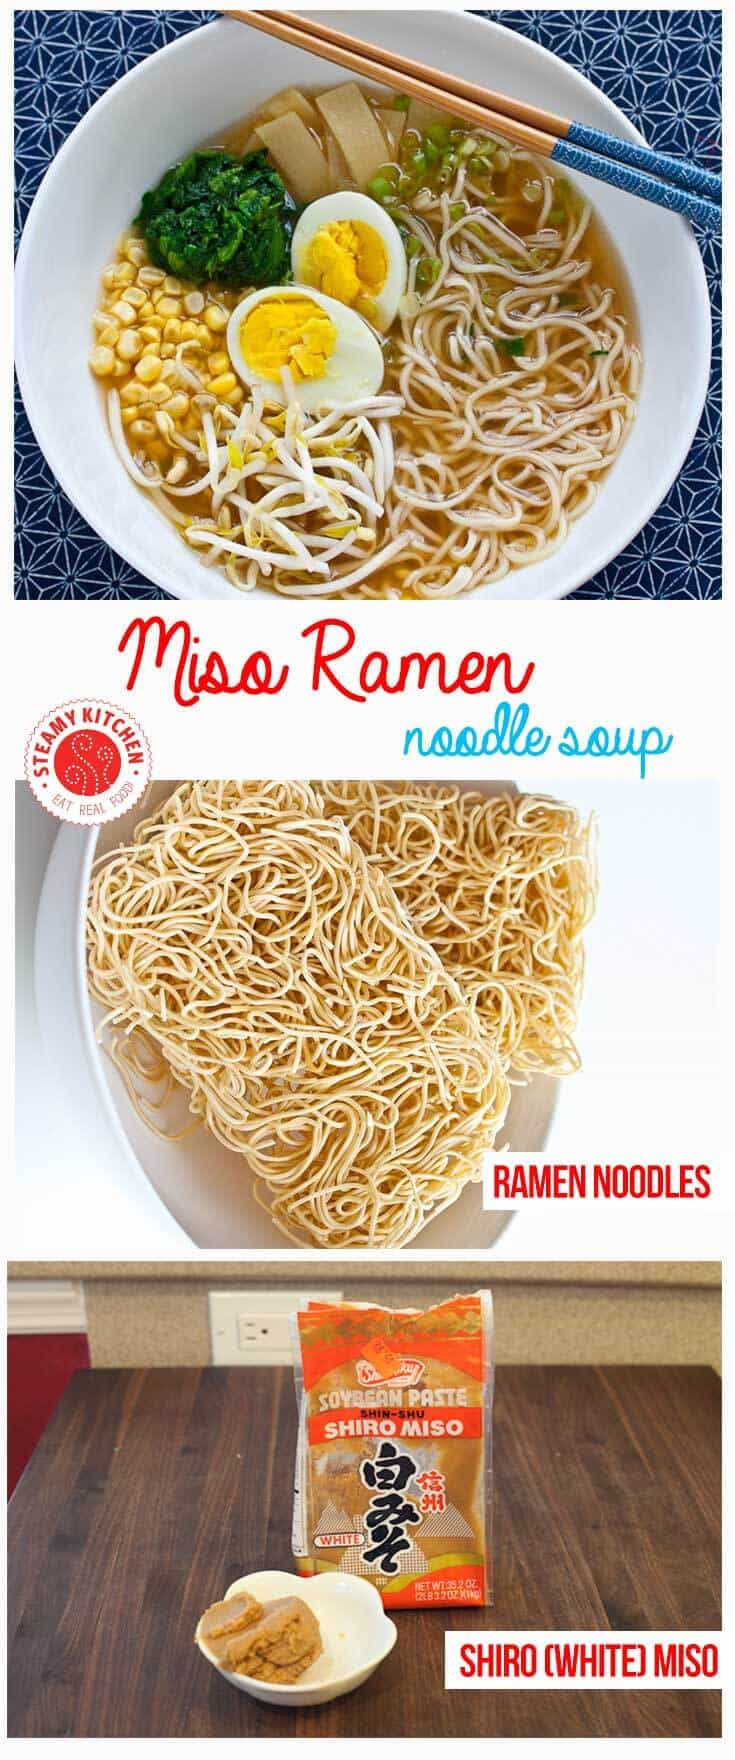 Miso Ramen Recipe - you can make this is 25 minutes!